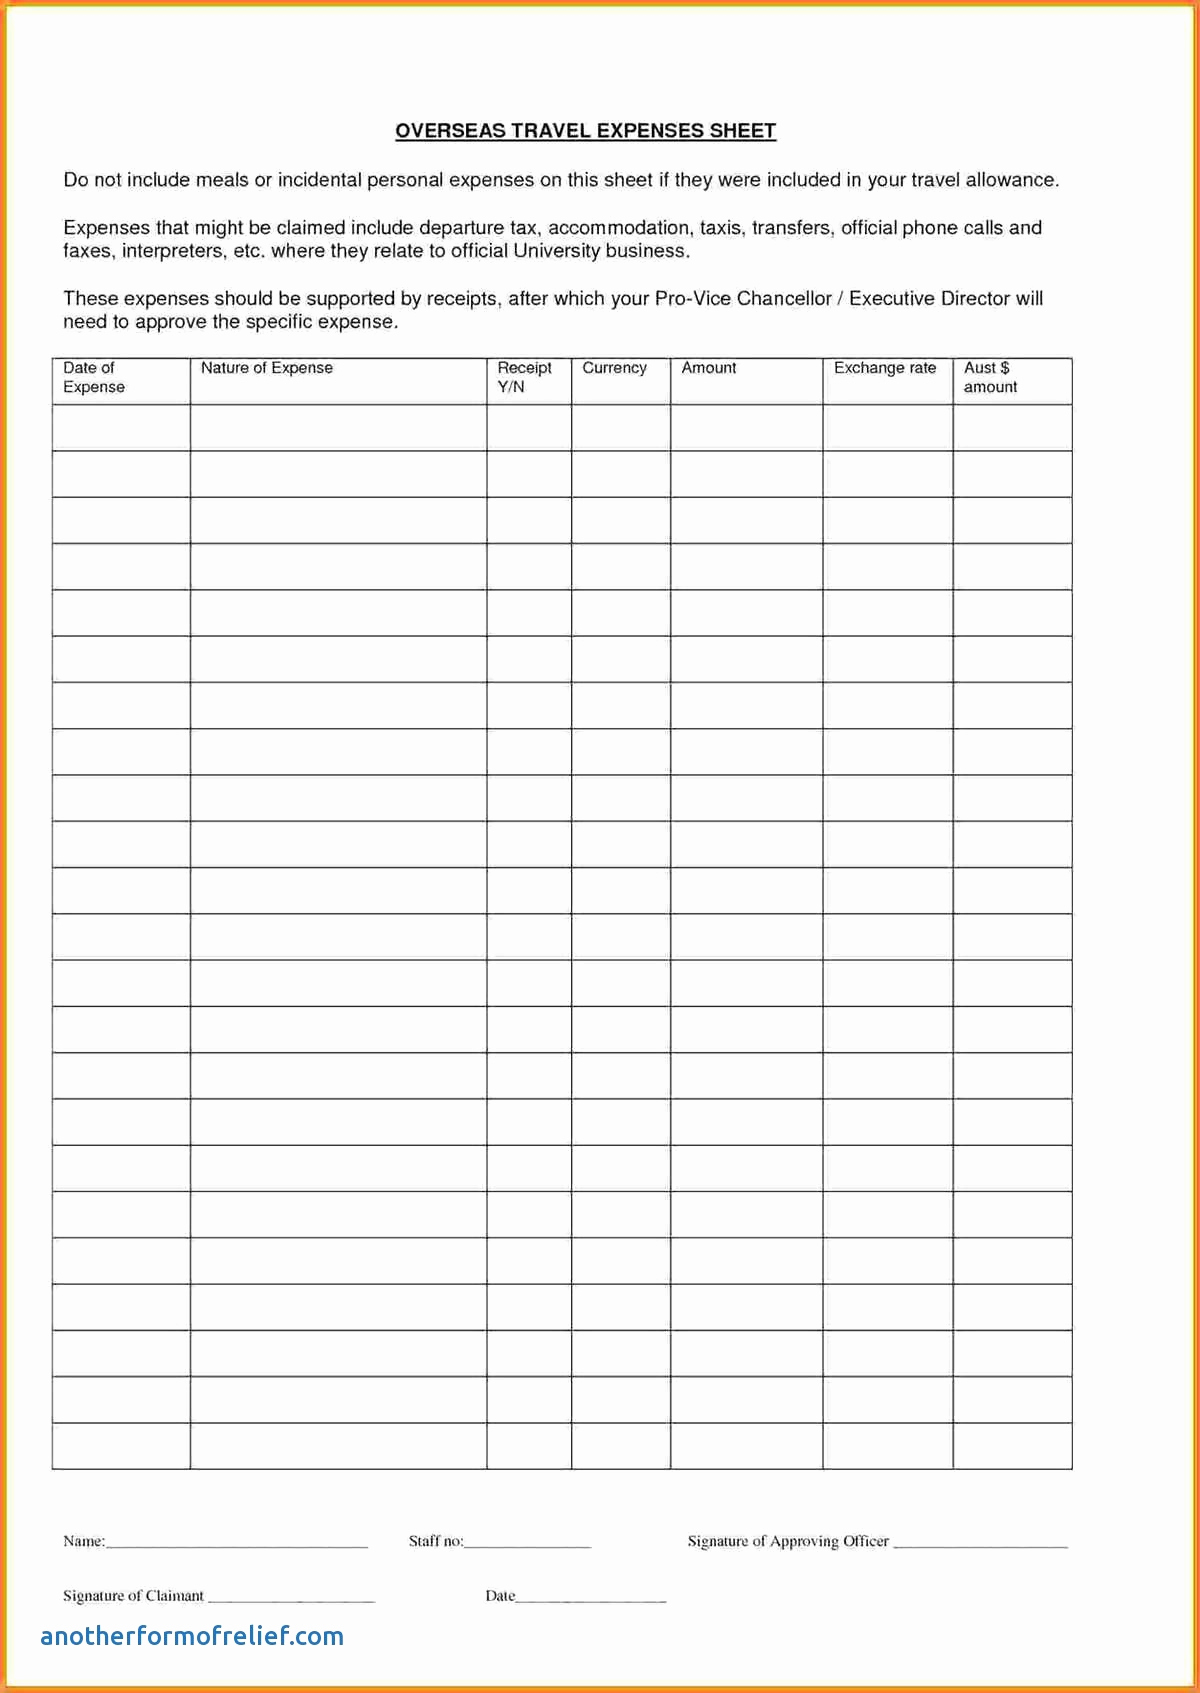 Construction Cost Spreadsheet Template For Home Building Cost In Construction Cost Estimate Spreadsheet